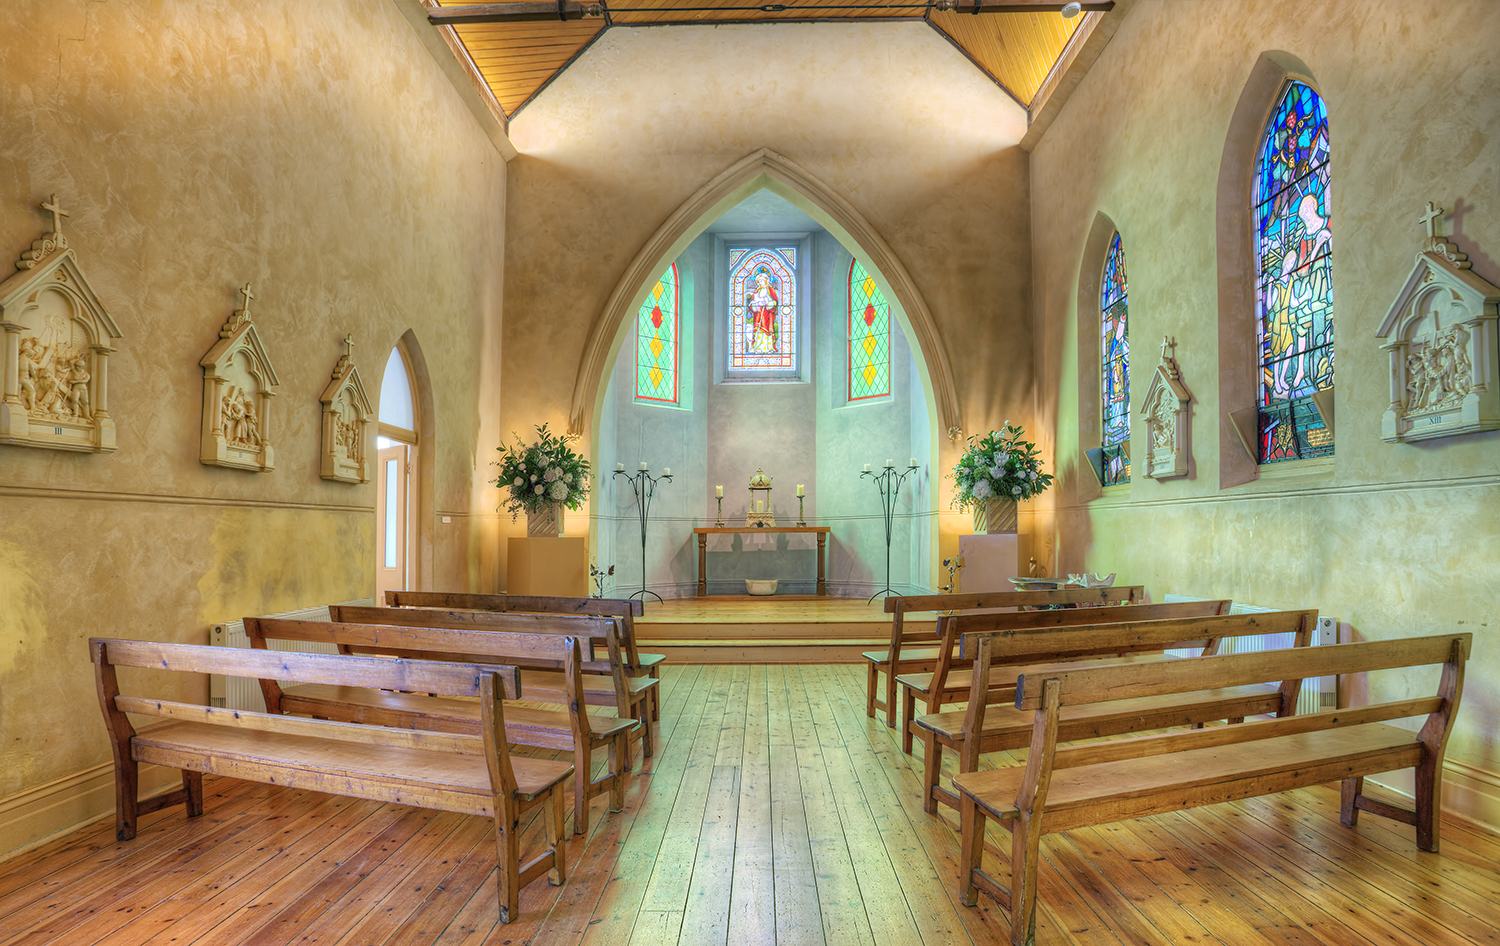 The chapel inside the Convent, Daylesford